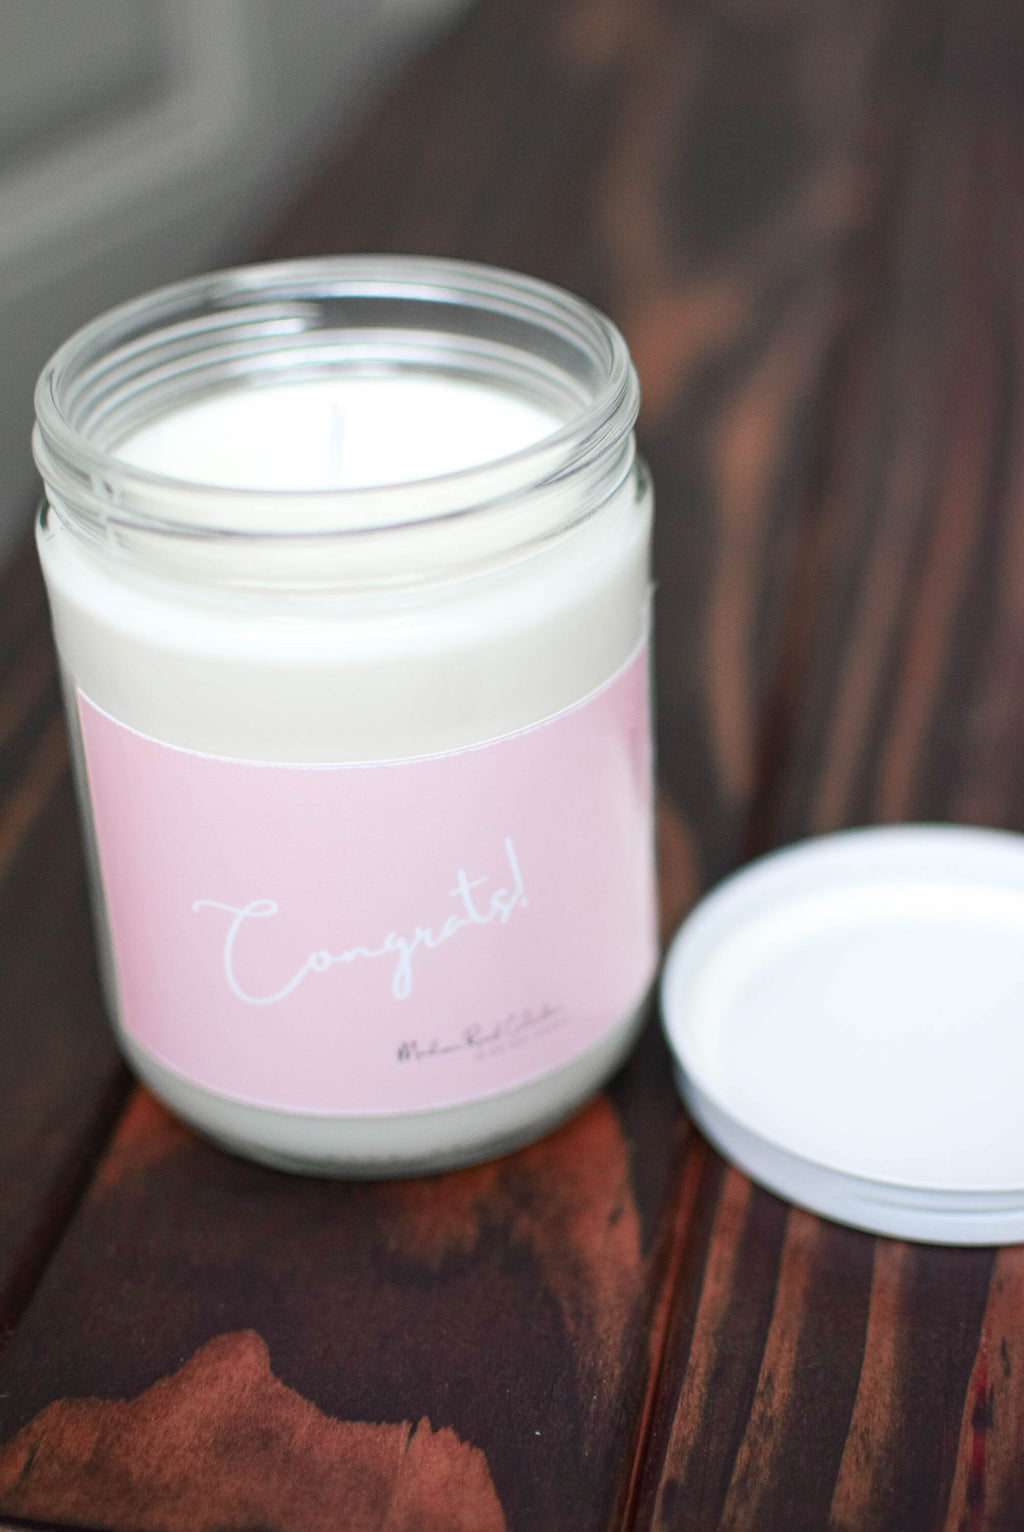 'Congrats!' 16oz Candle